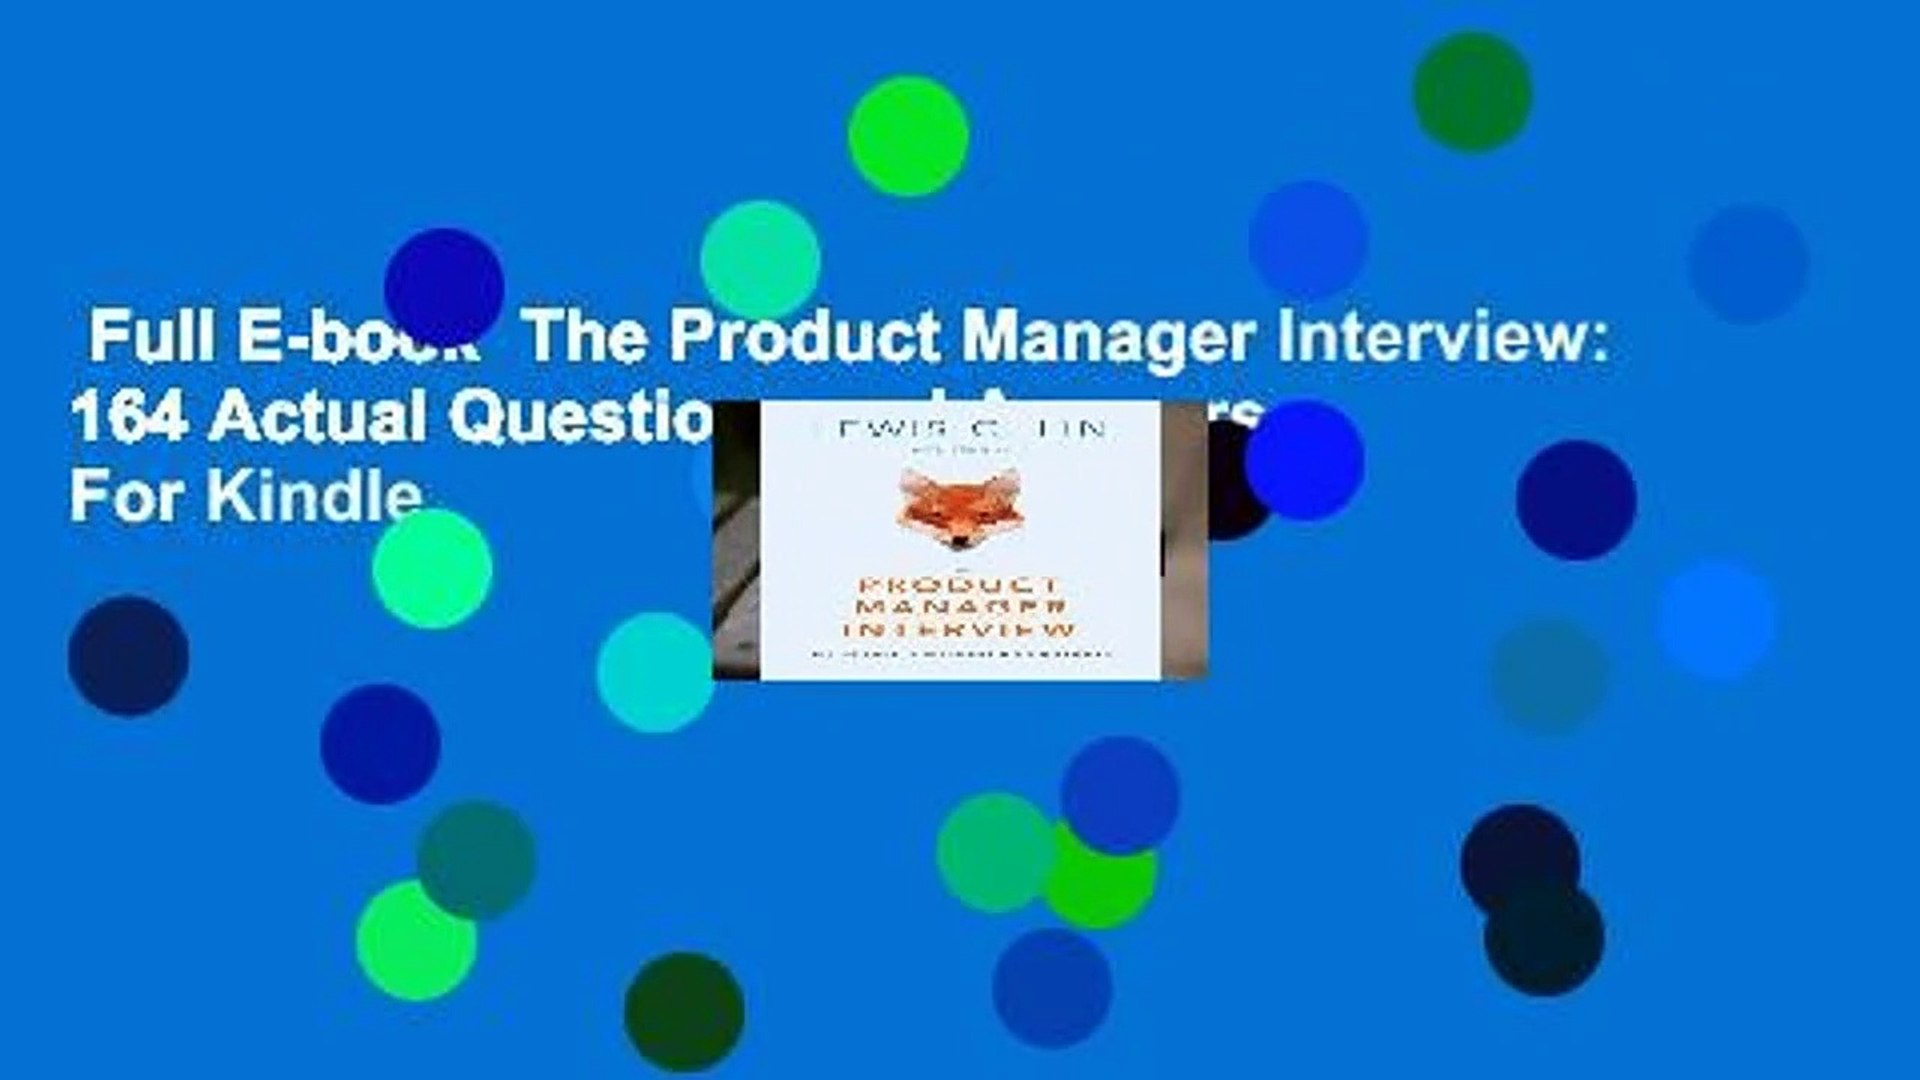 Full E-book The Product Manager Interview: 164 Actual Questions and Answers  For Kindle